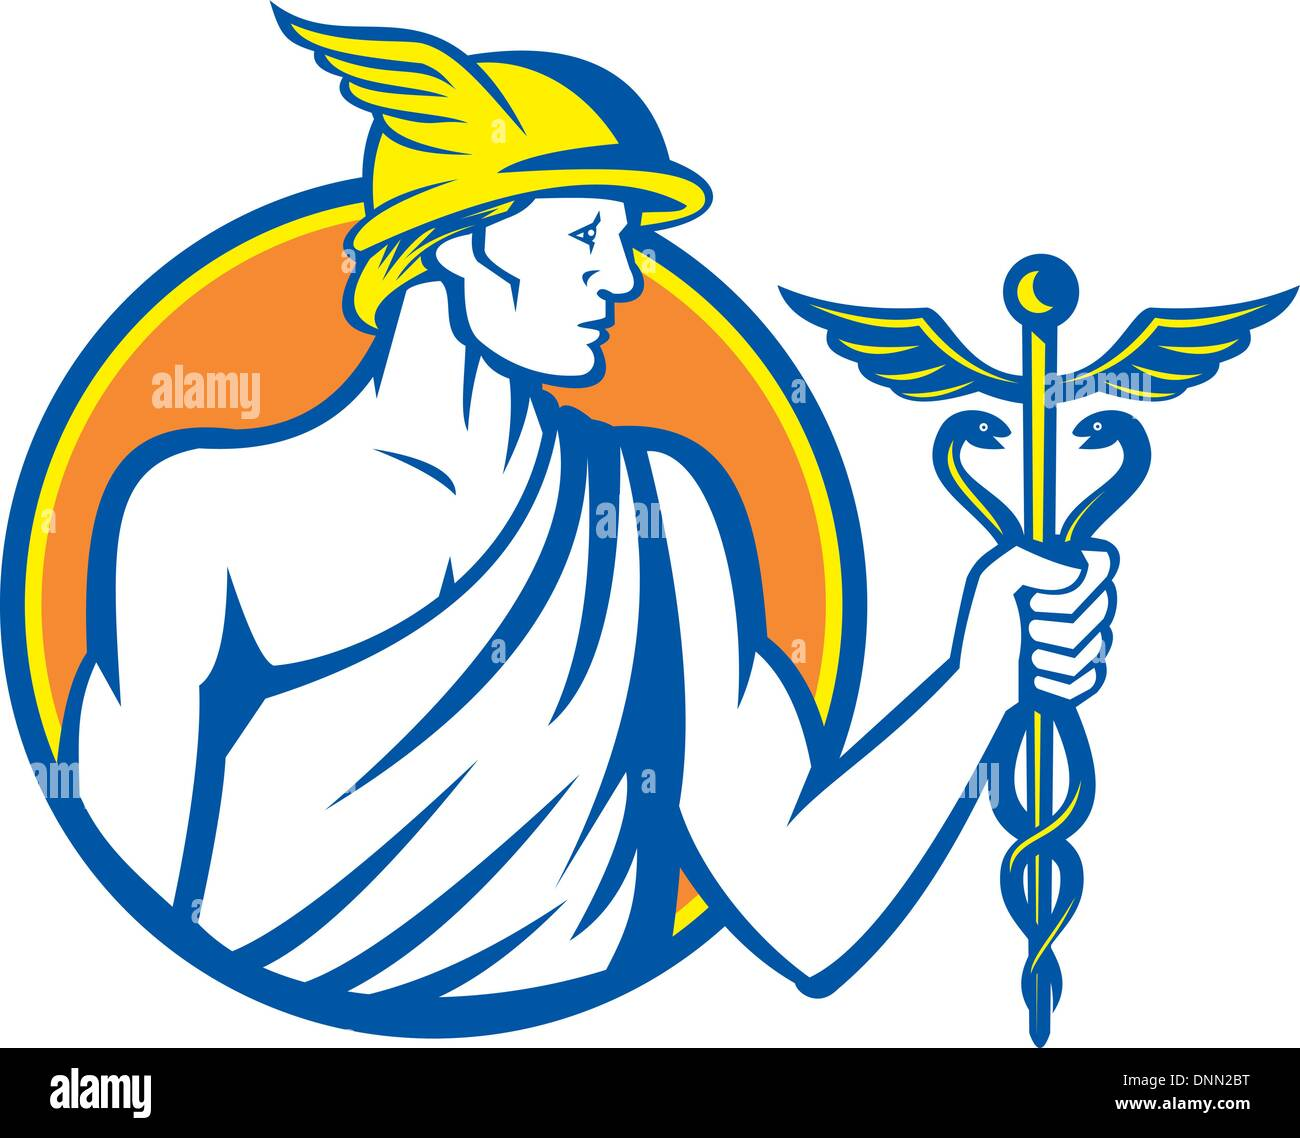 Illustration of Roman god Mercury patron god of financial gain, commerce, communication and travelers wearing winged hat and holding caduceus a herald's staff with two entwined snakes looking to side set inside circle on isolated background done in retro - Stock Image